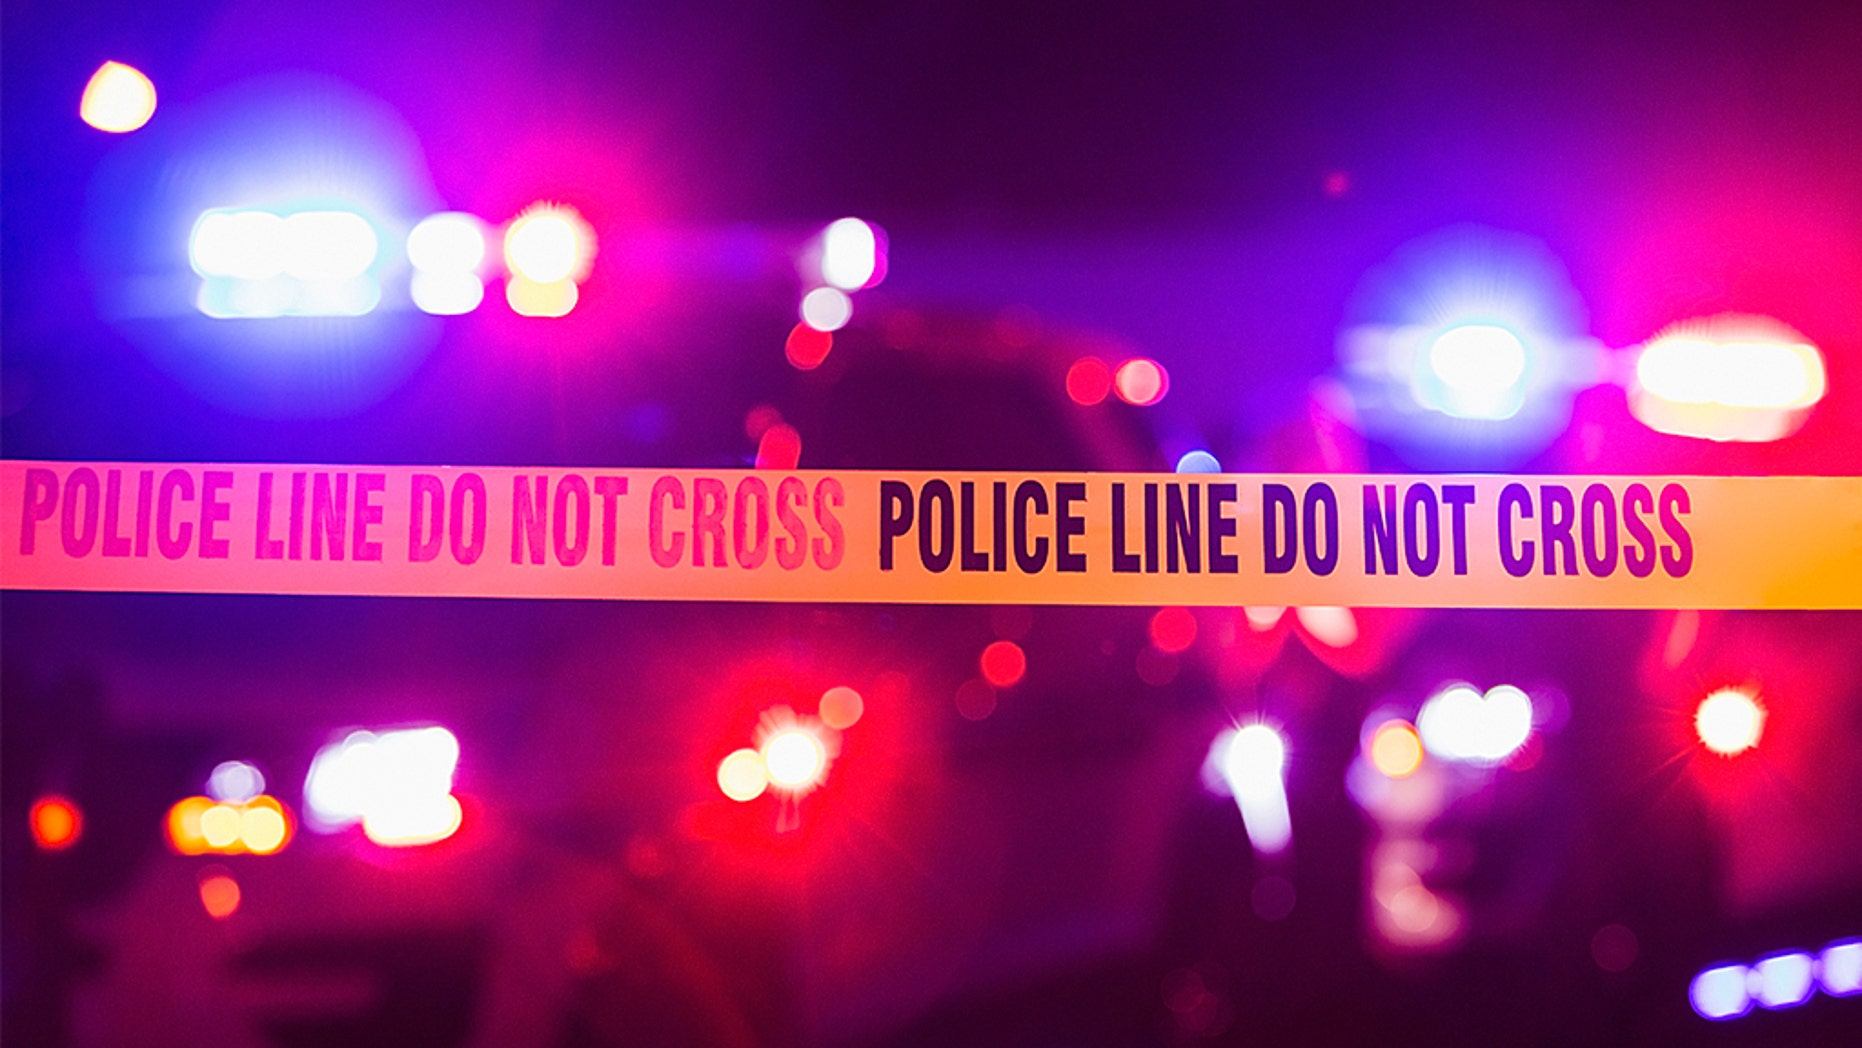 Accident or crime scene cordon tape, police line do not cross. It is nighttime, emergency lights of police cars flashing blue, red and white in the background